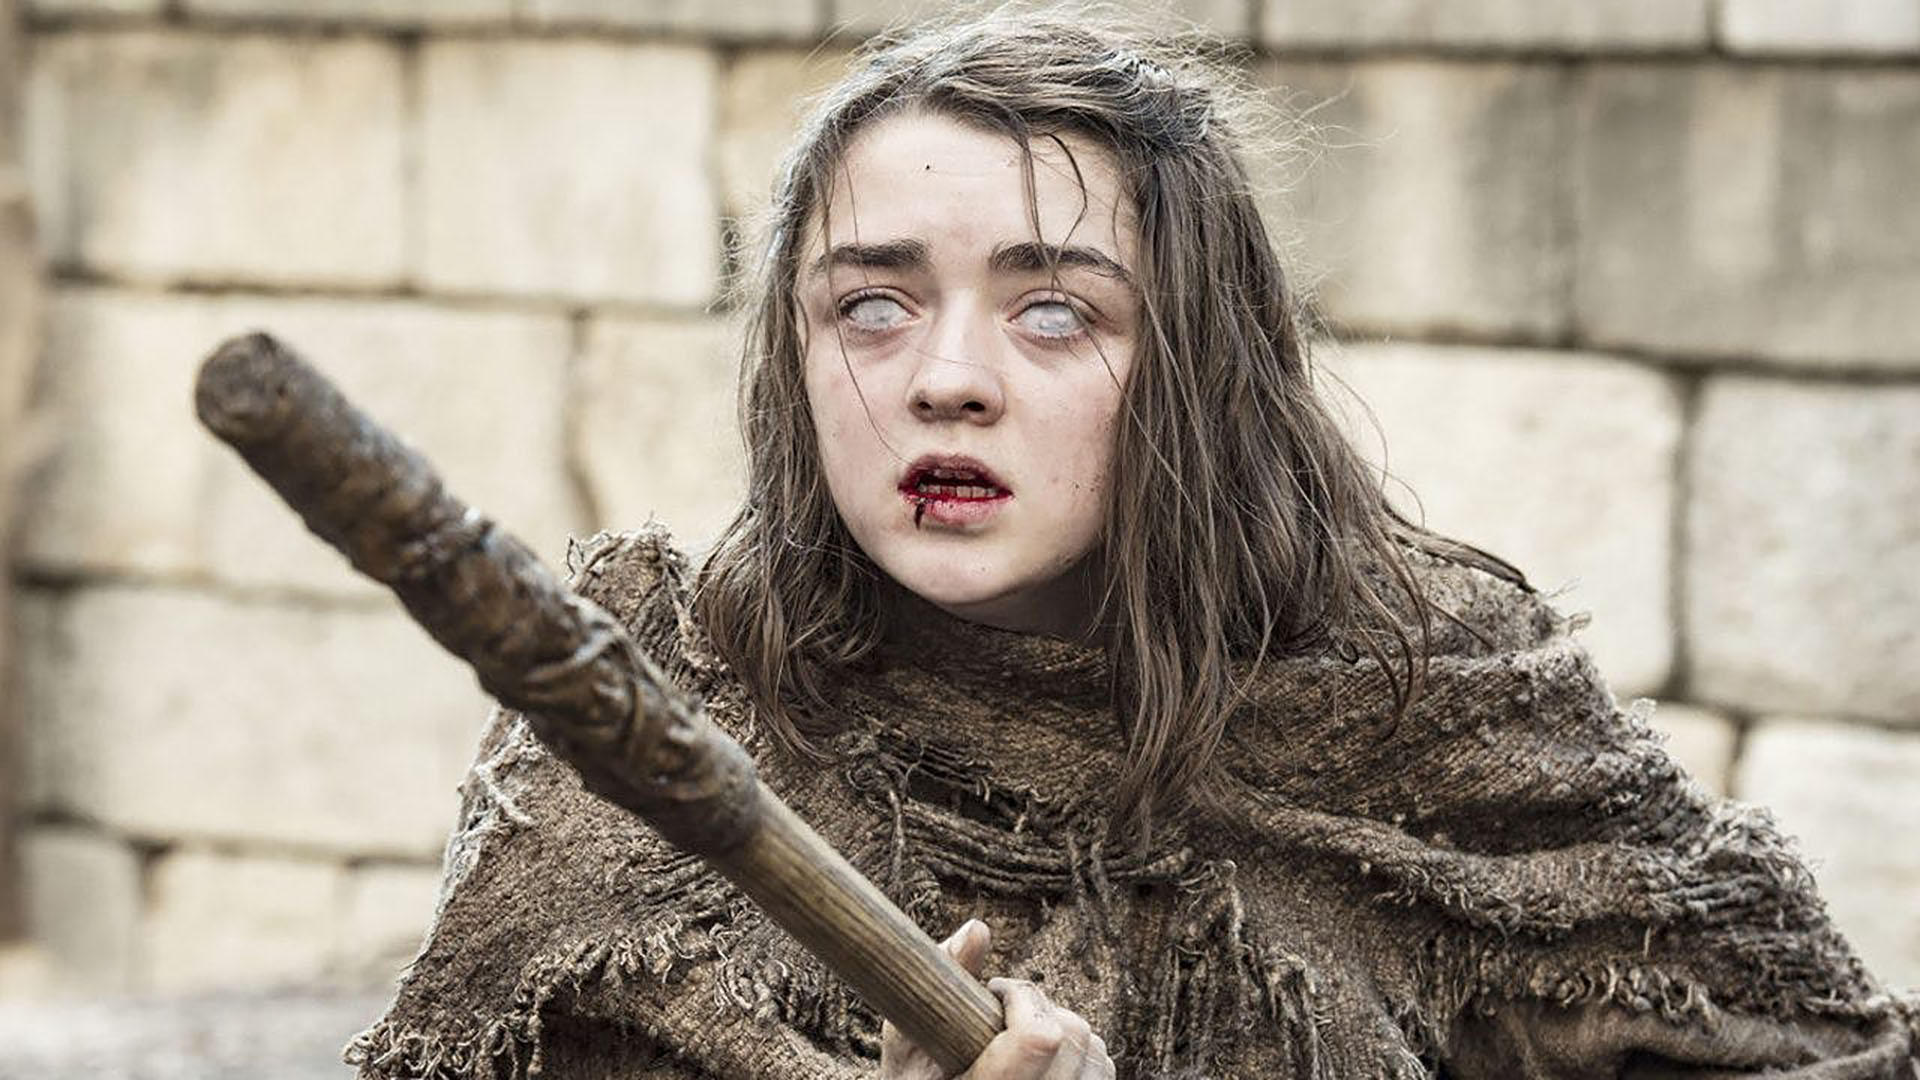 La actriz Maisie Williams